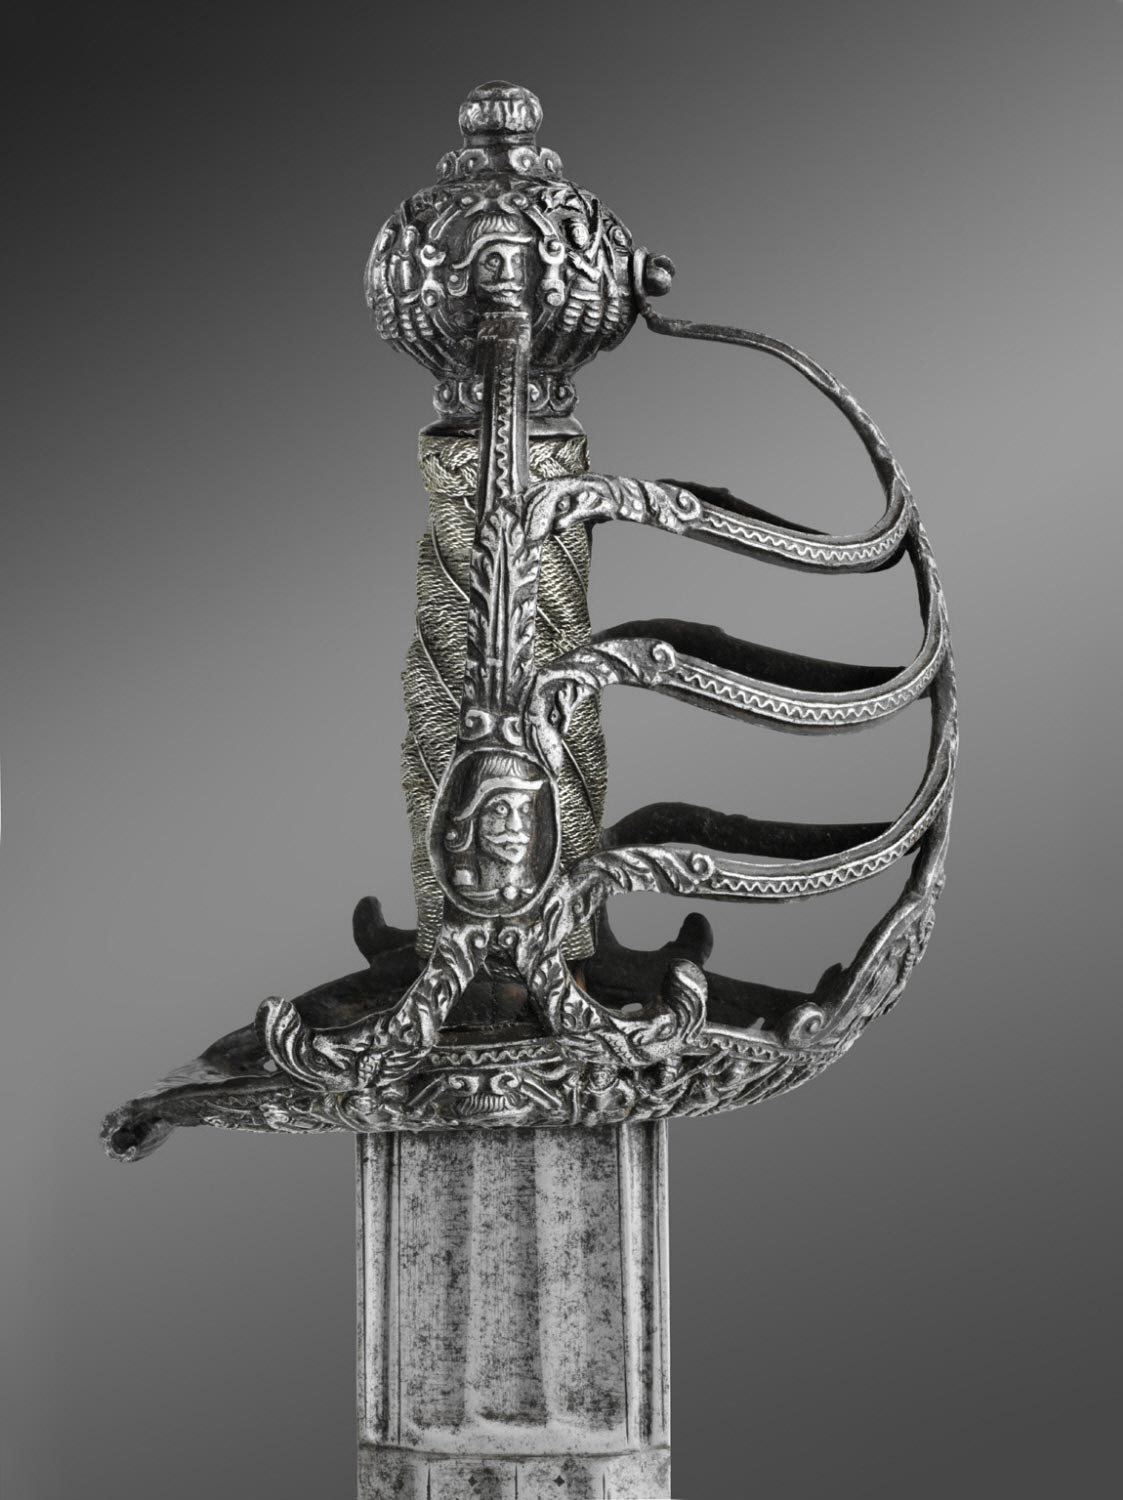 Broadsword of Oliver Cromwell